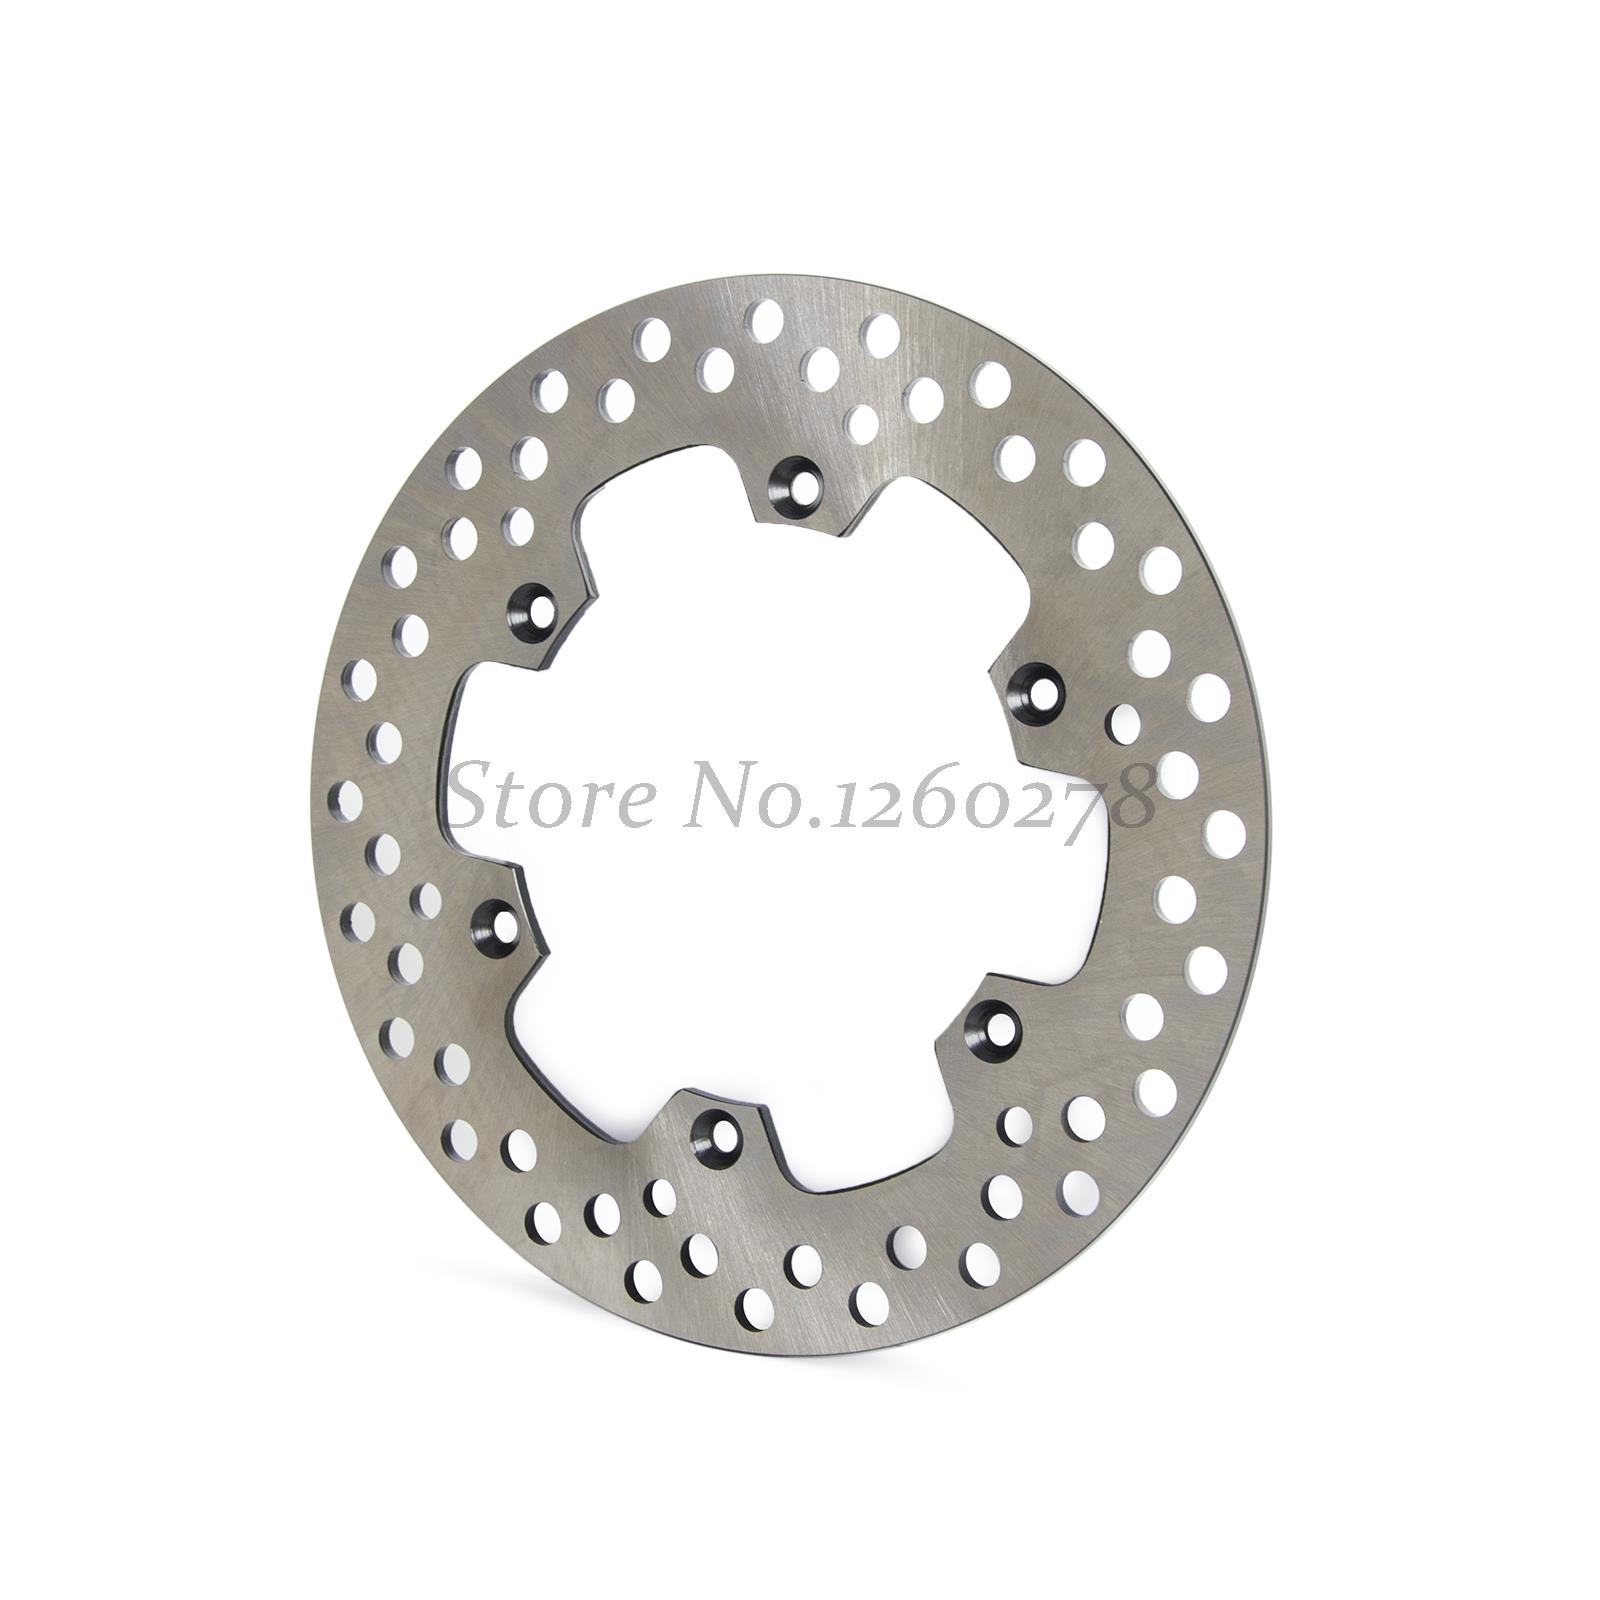 Motorcycle Steel Rear Brake Disc For Suzuki DR 125 SMK8 SMK9 SML0 08 12